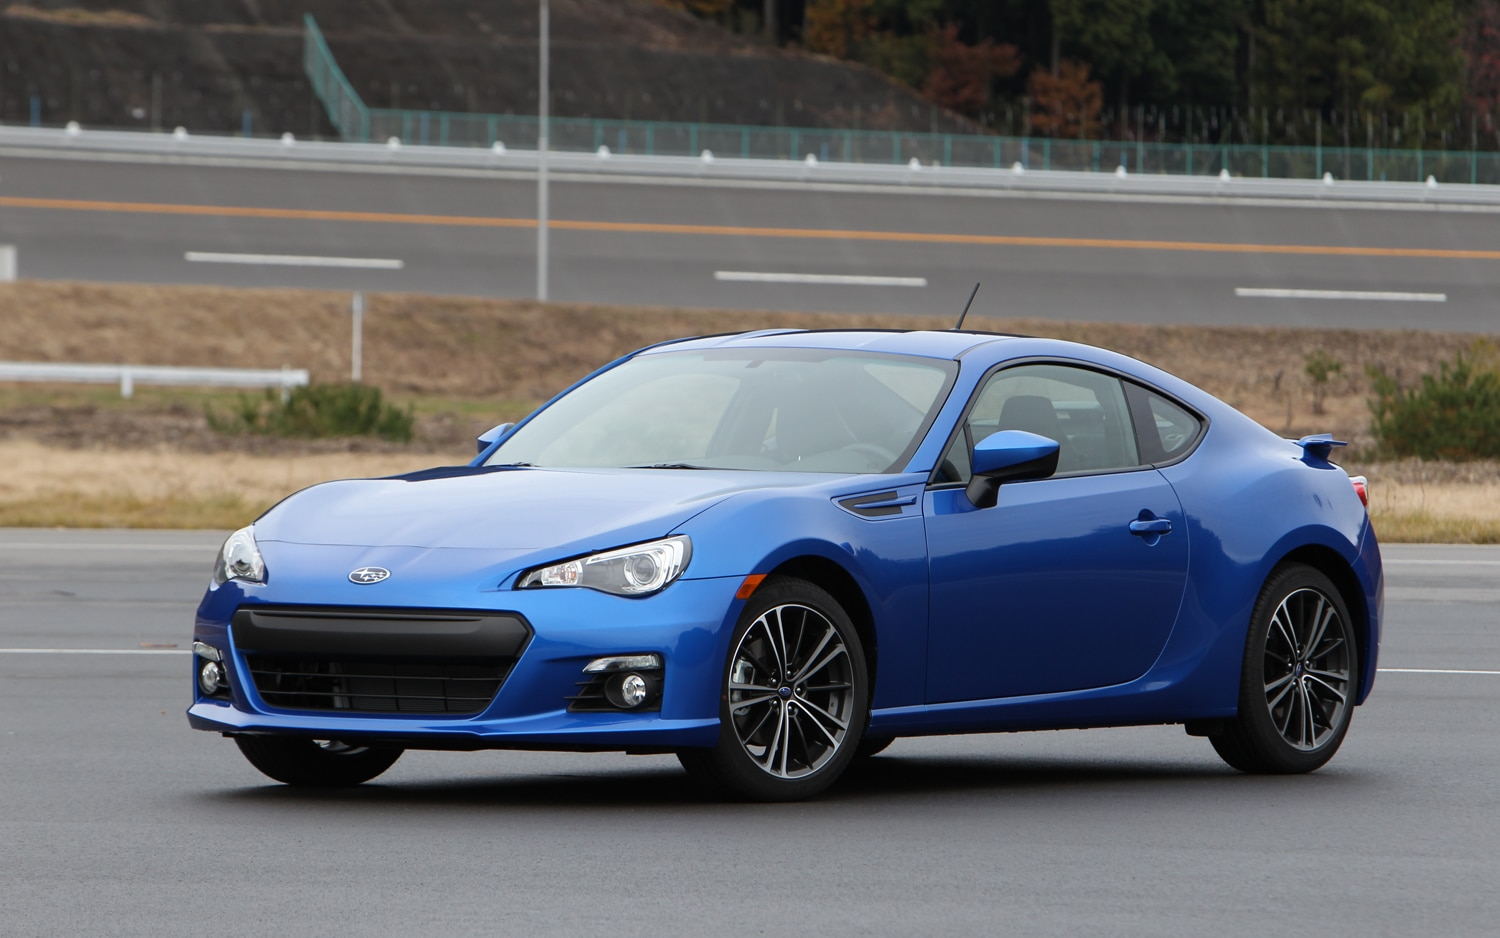 2013 Subaru BRZ Front Left Side View1